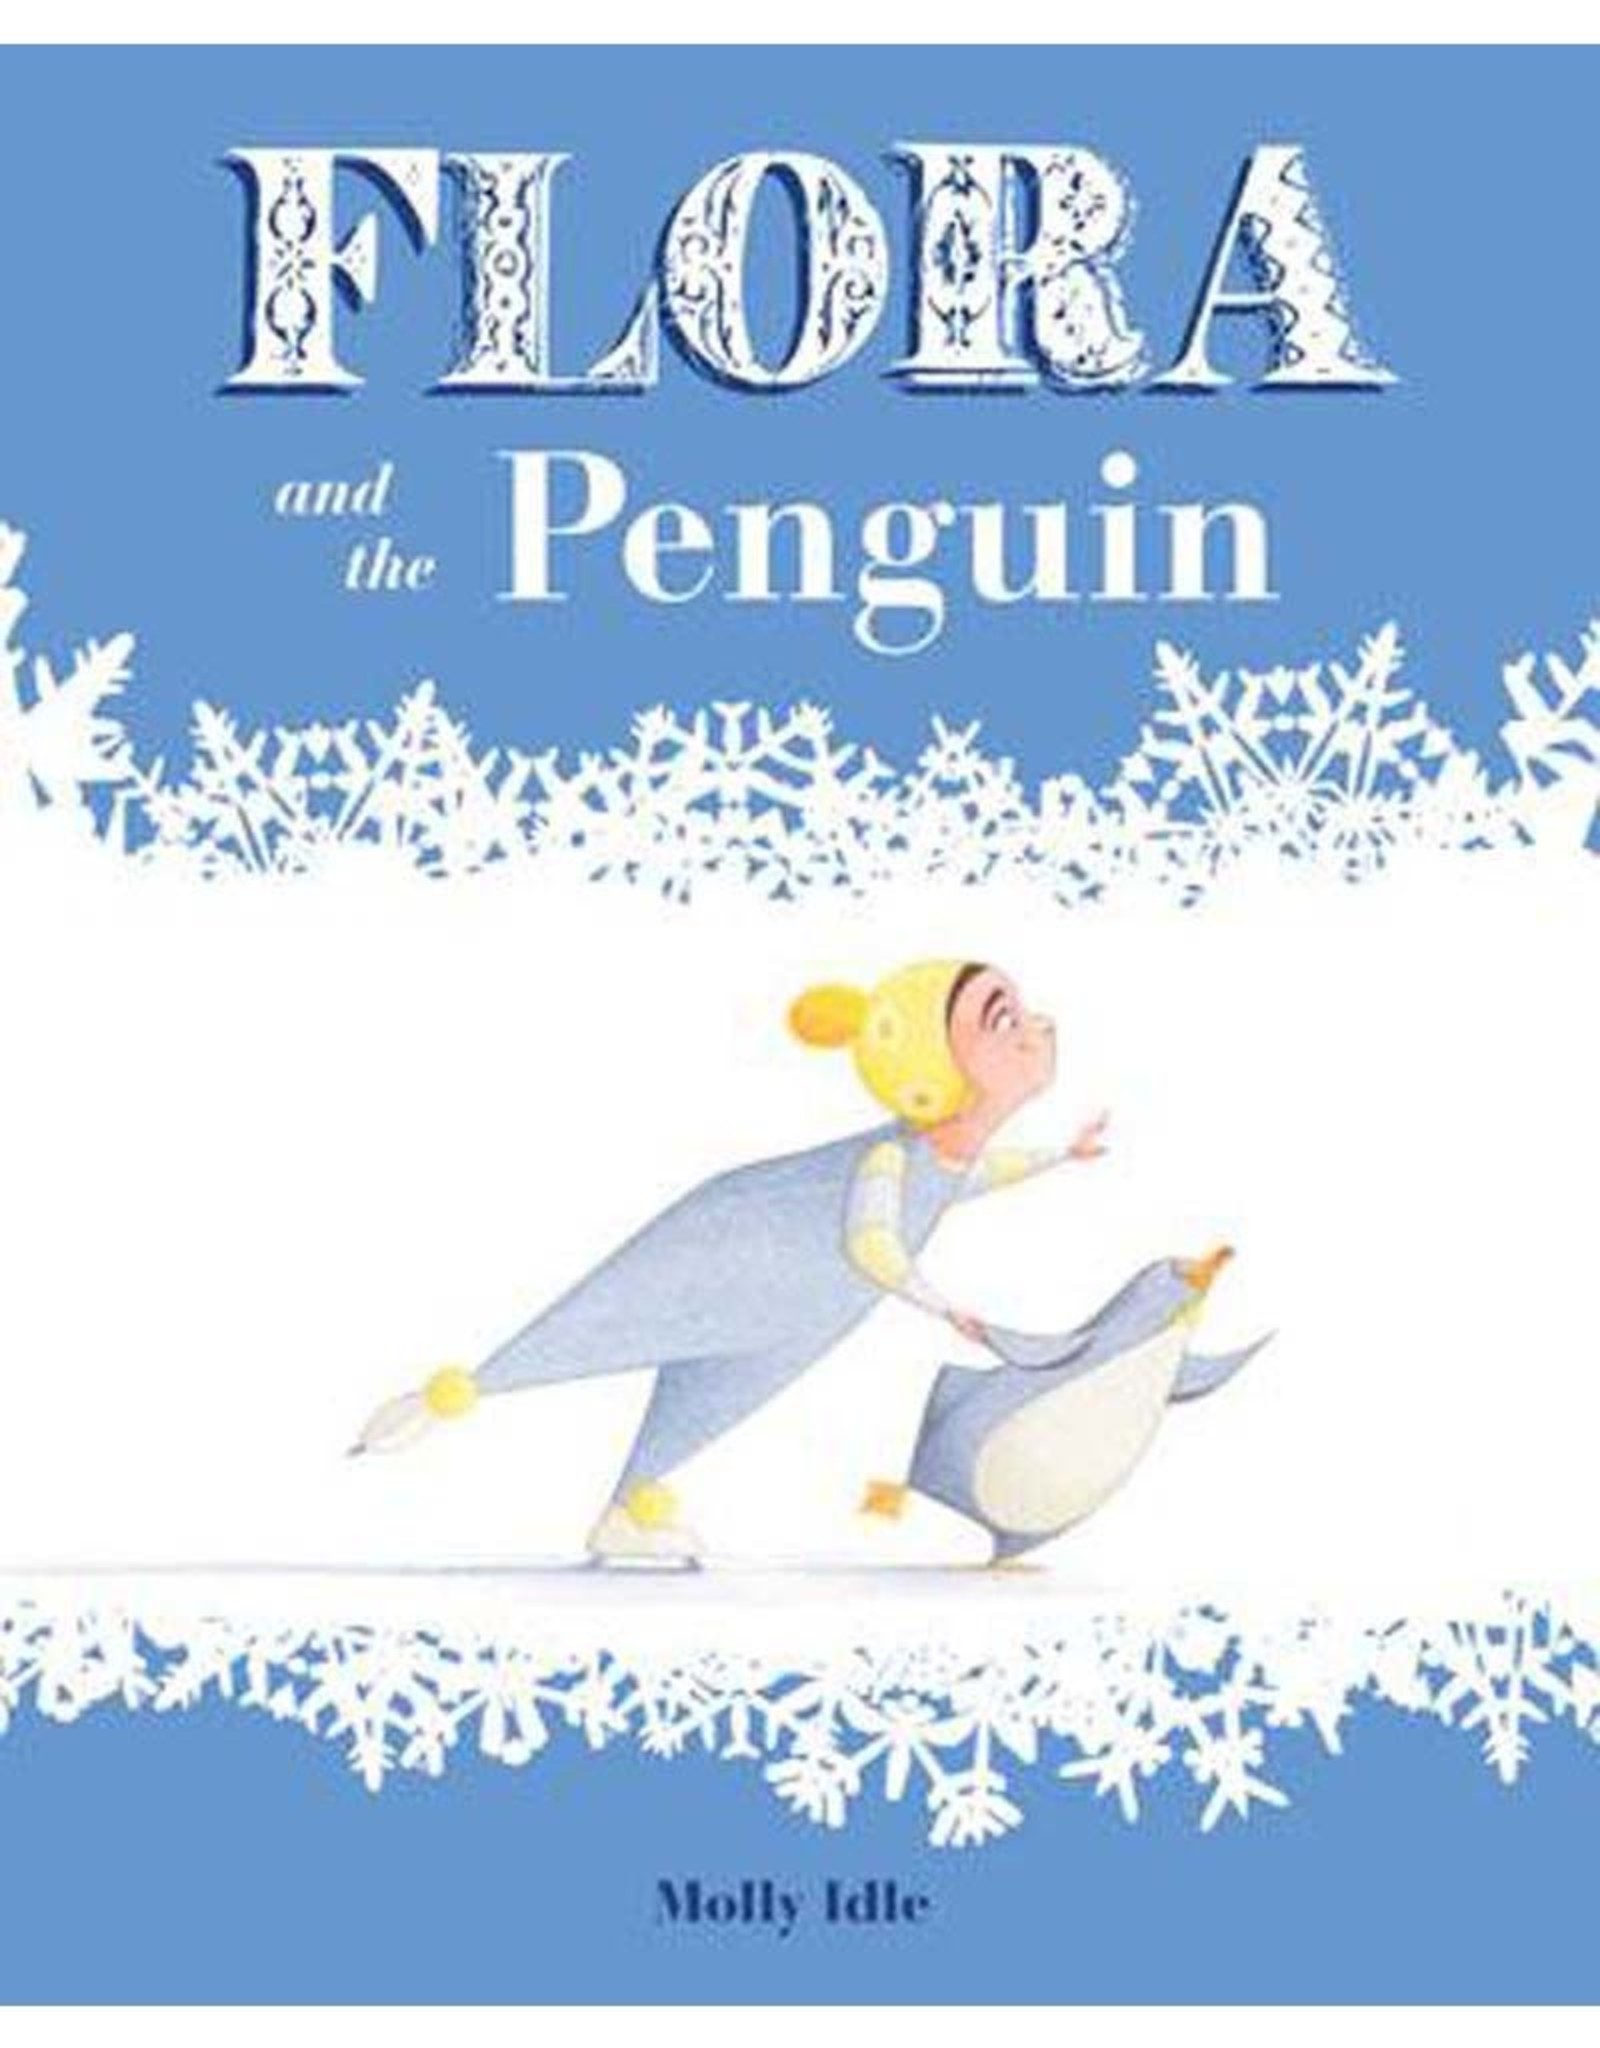 ##Flora And the Penguin